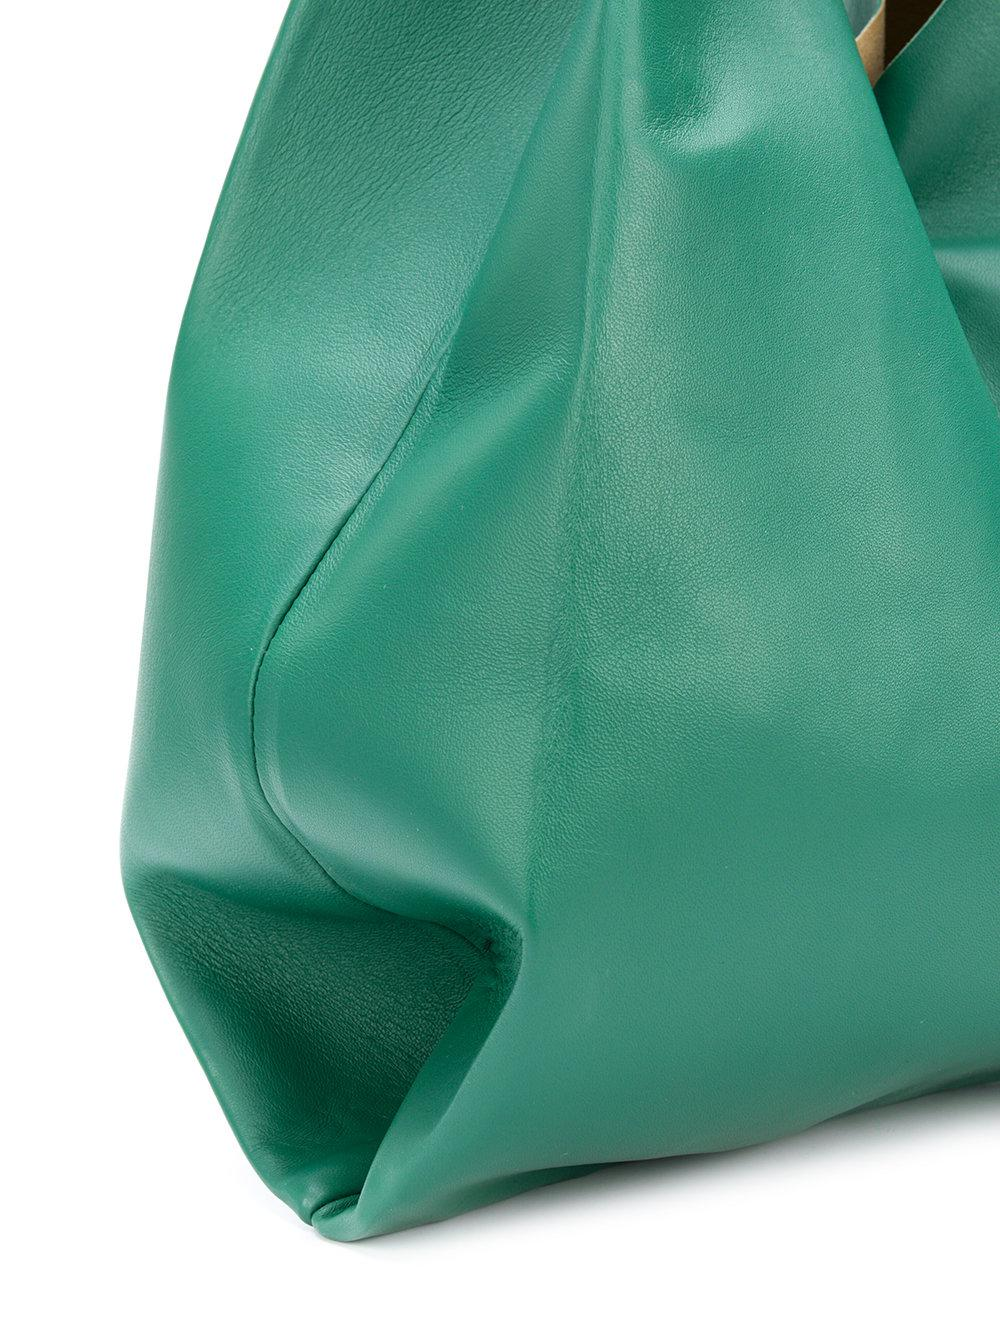 Maison Margiela Synthetic Foldover Oversized Tote in Green